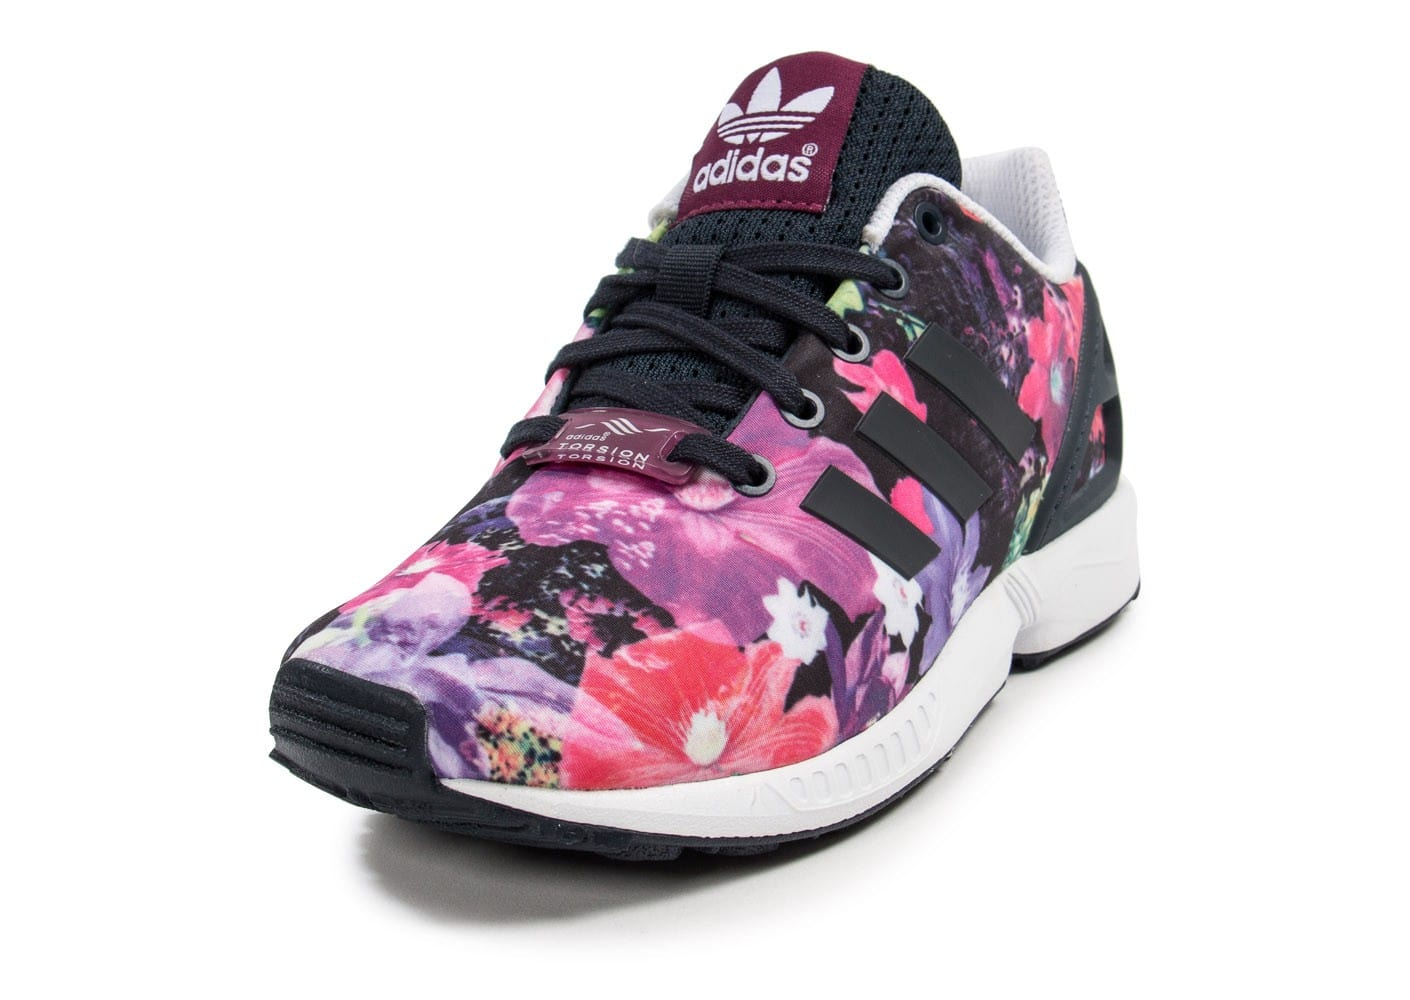 adidas zx flux enfant floral - chaussures adidas